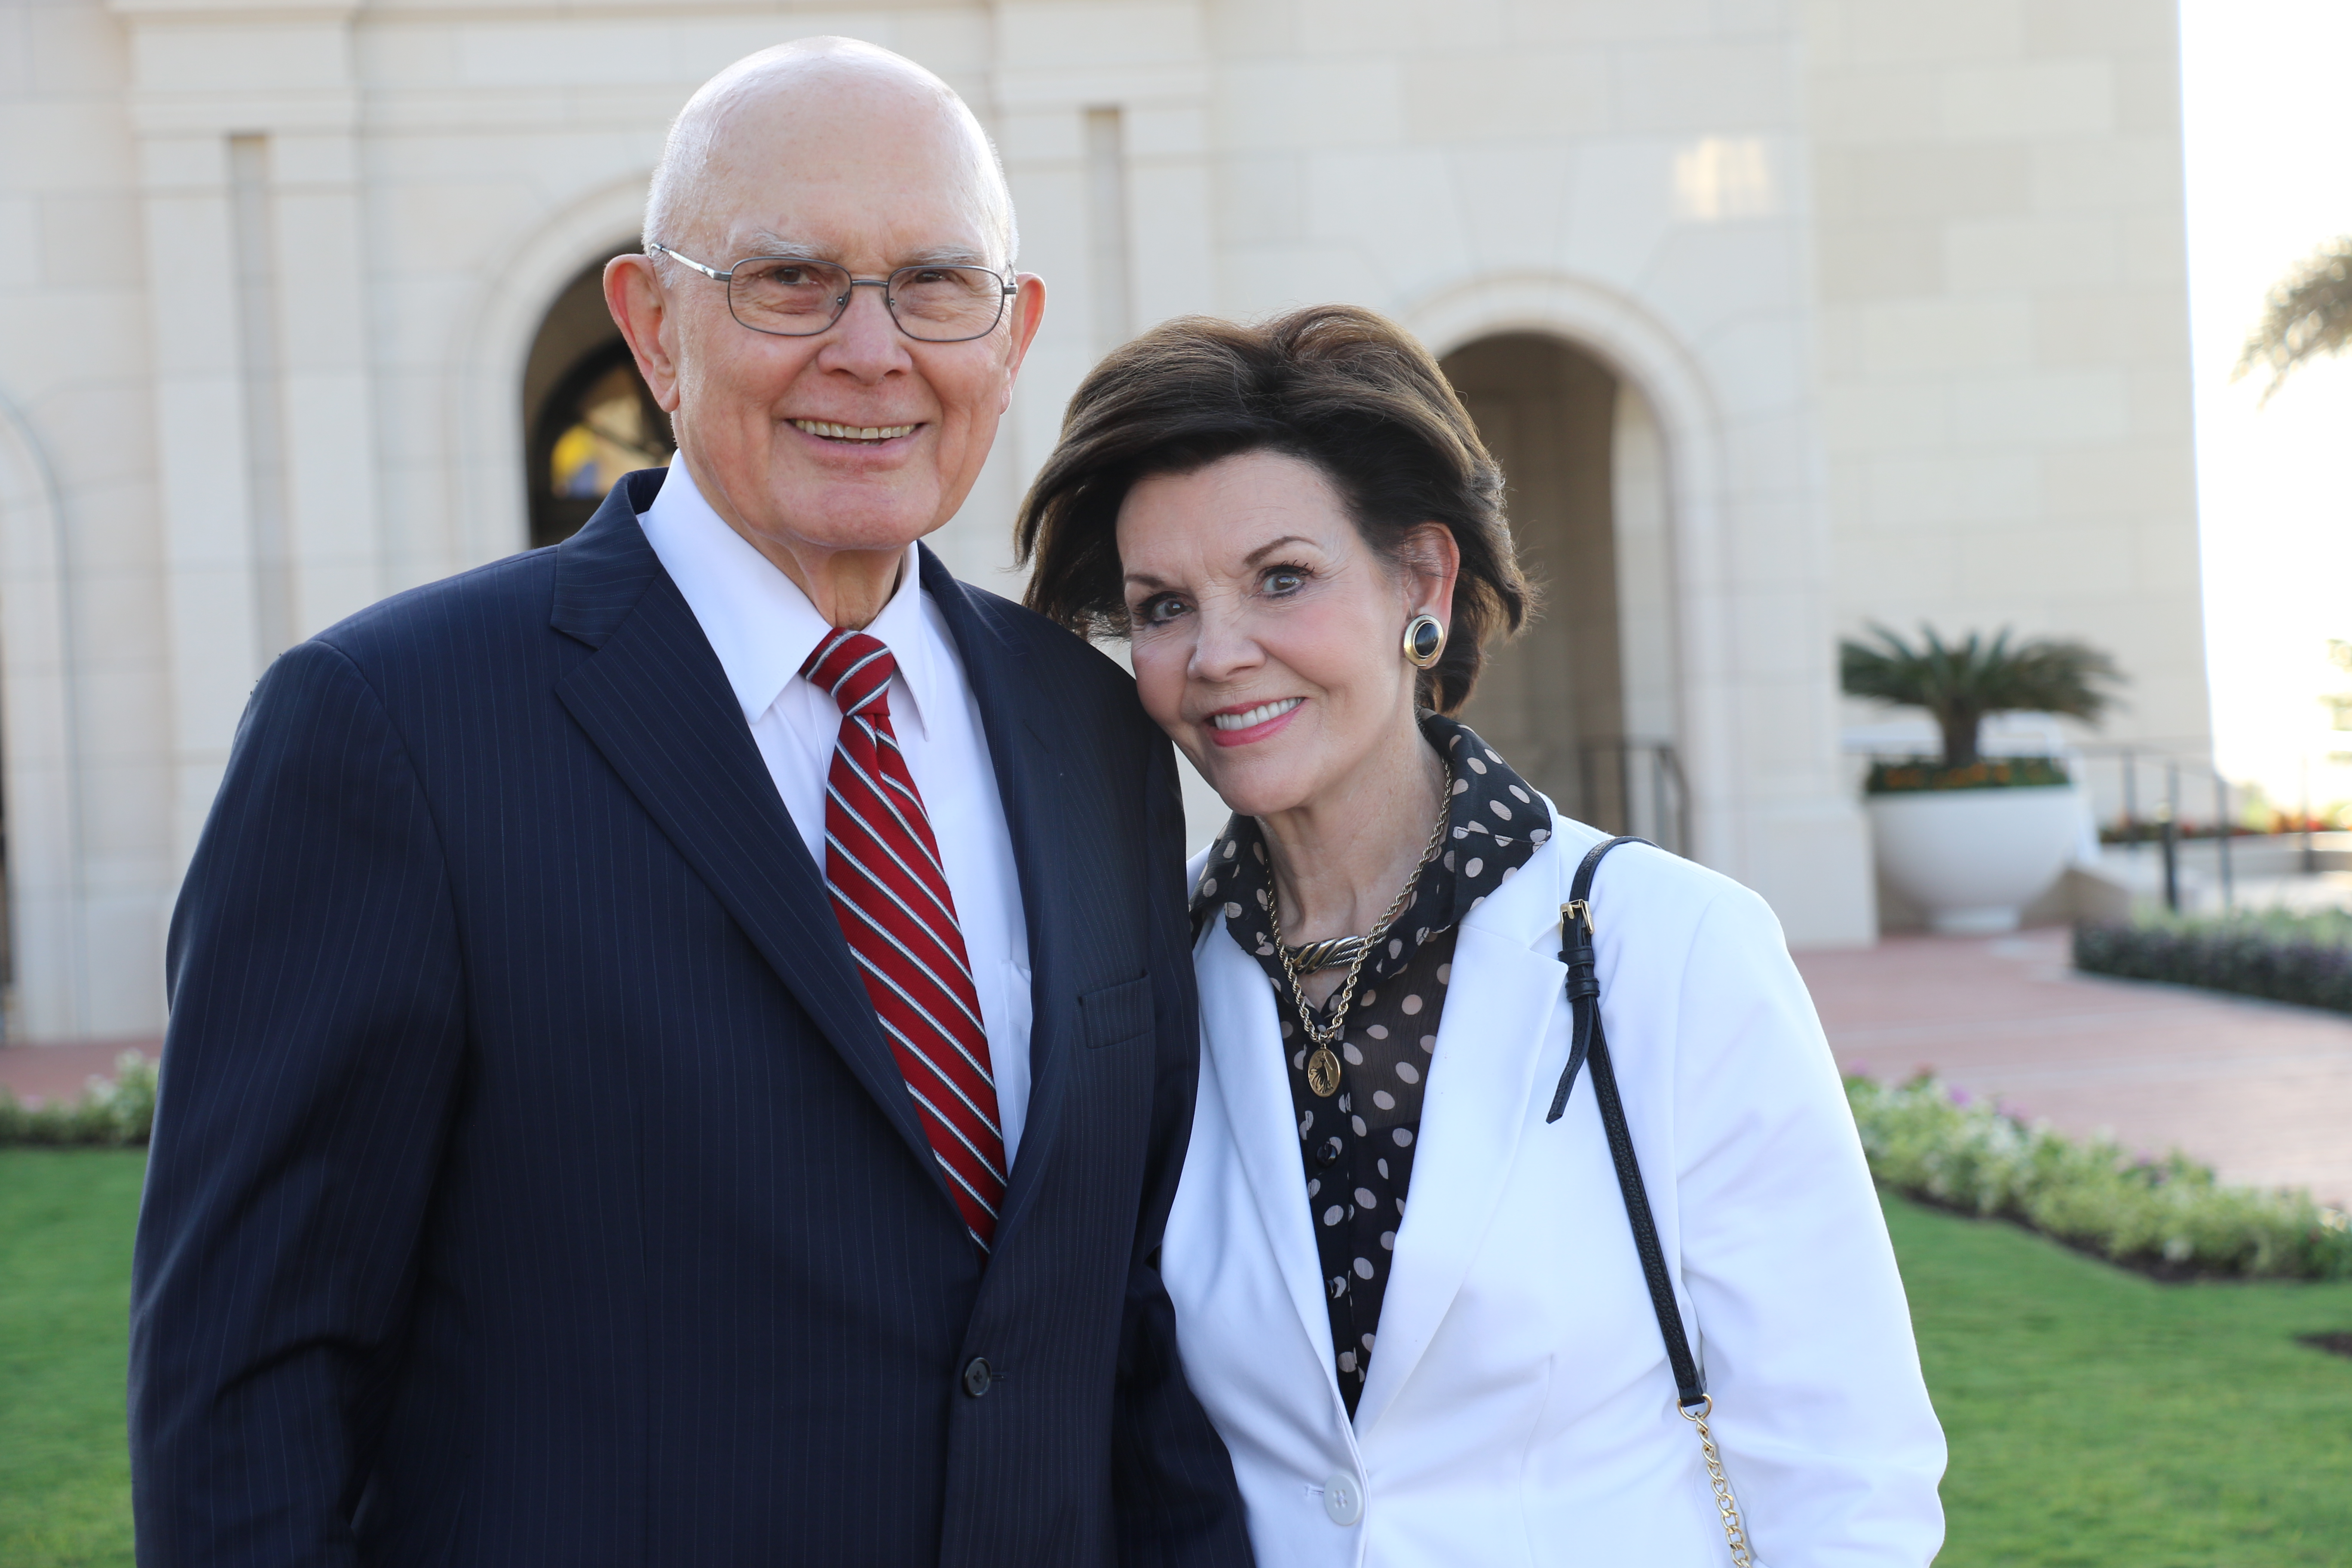 President Dallin H. Oaks, first counselor in the First Presidency, and Sister Kristen Oaks pause for a photo outside the Barranquilla Colombia Temple.